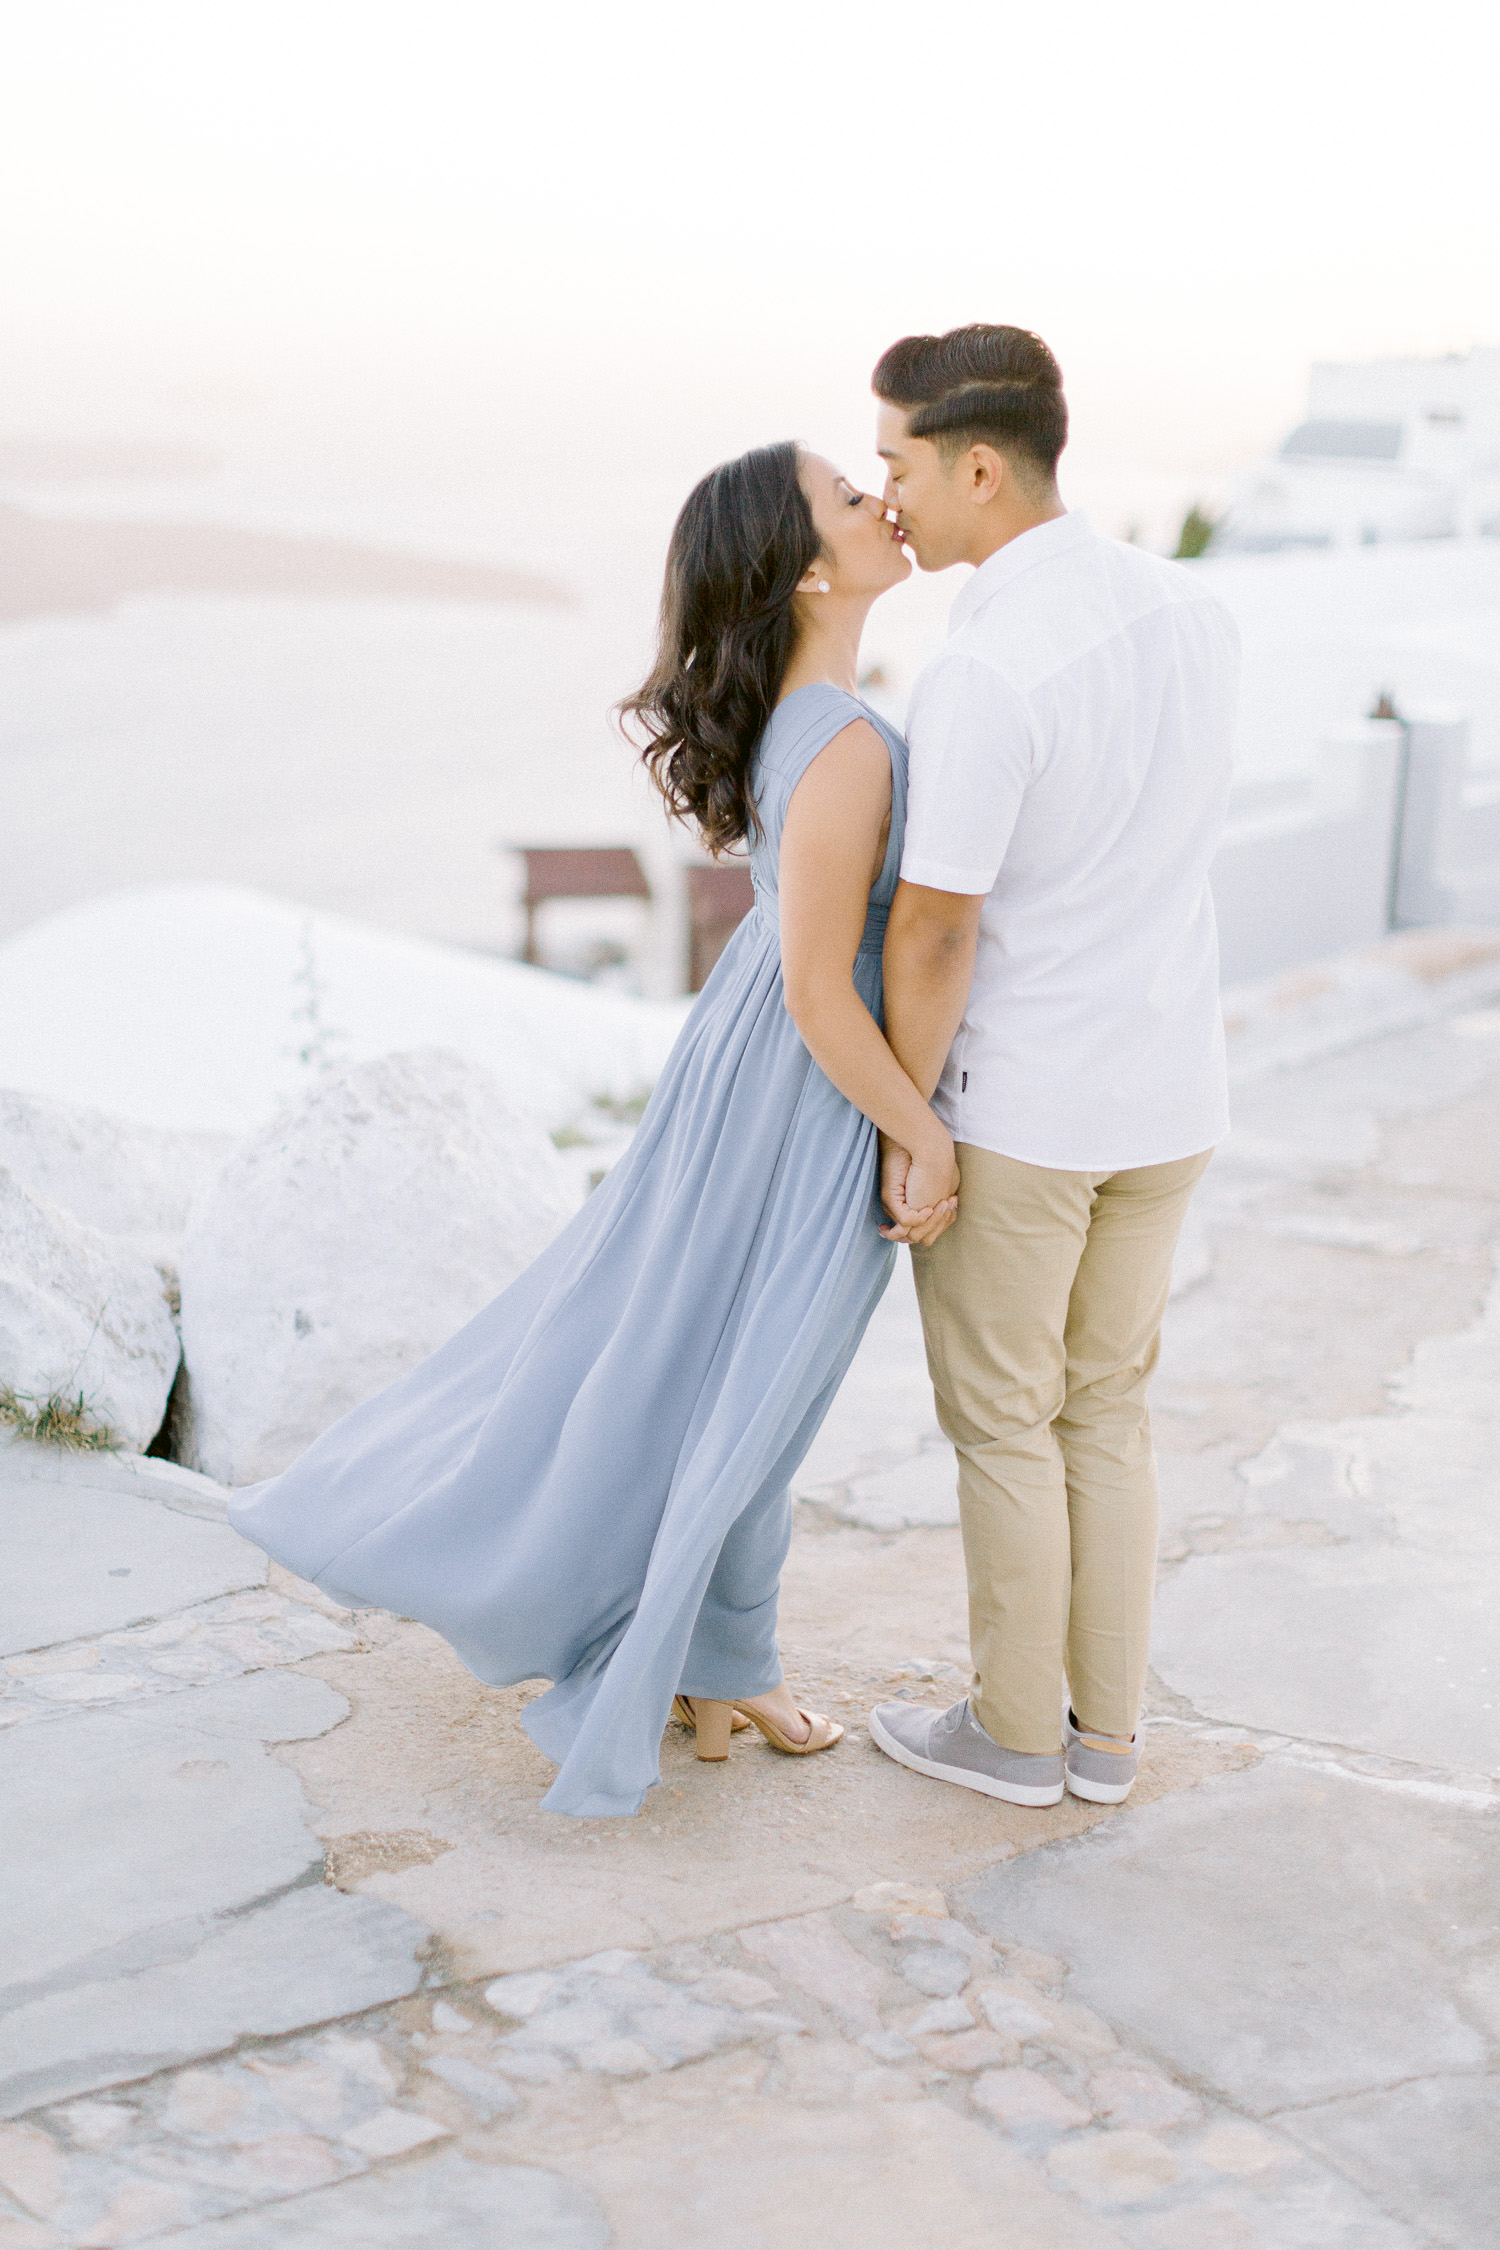 Bride & groom to be looks stylish on white and blue outfit in Santorini